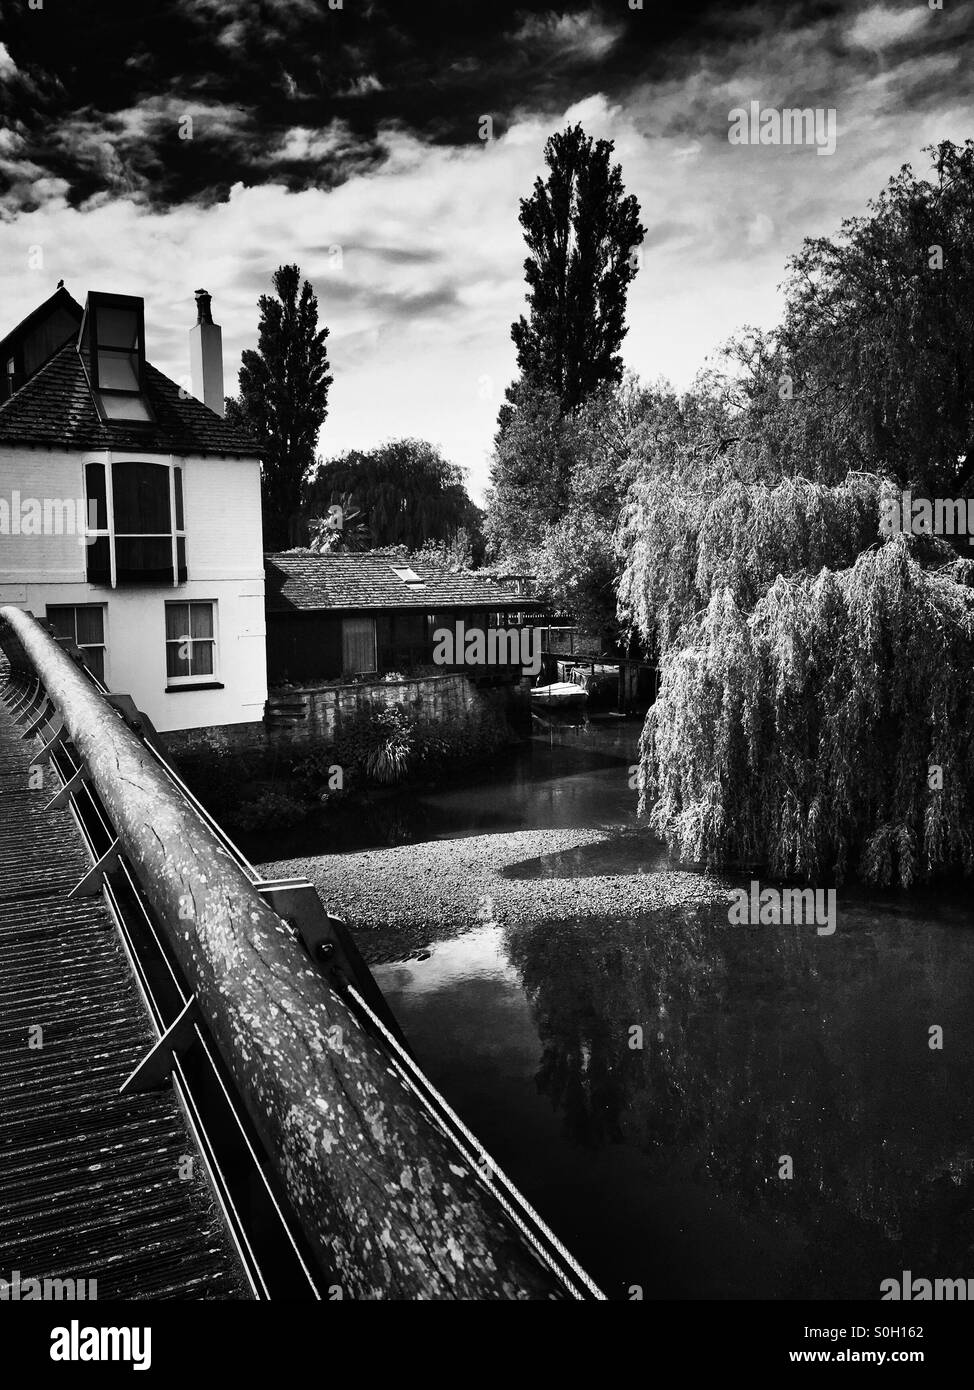 Riverside house near a picturesque bridge - black and white Stock Photo